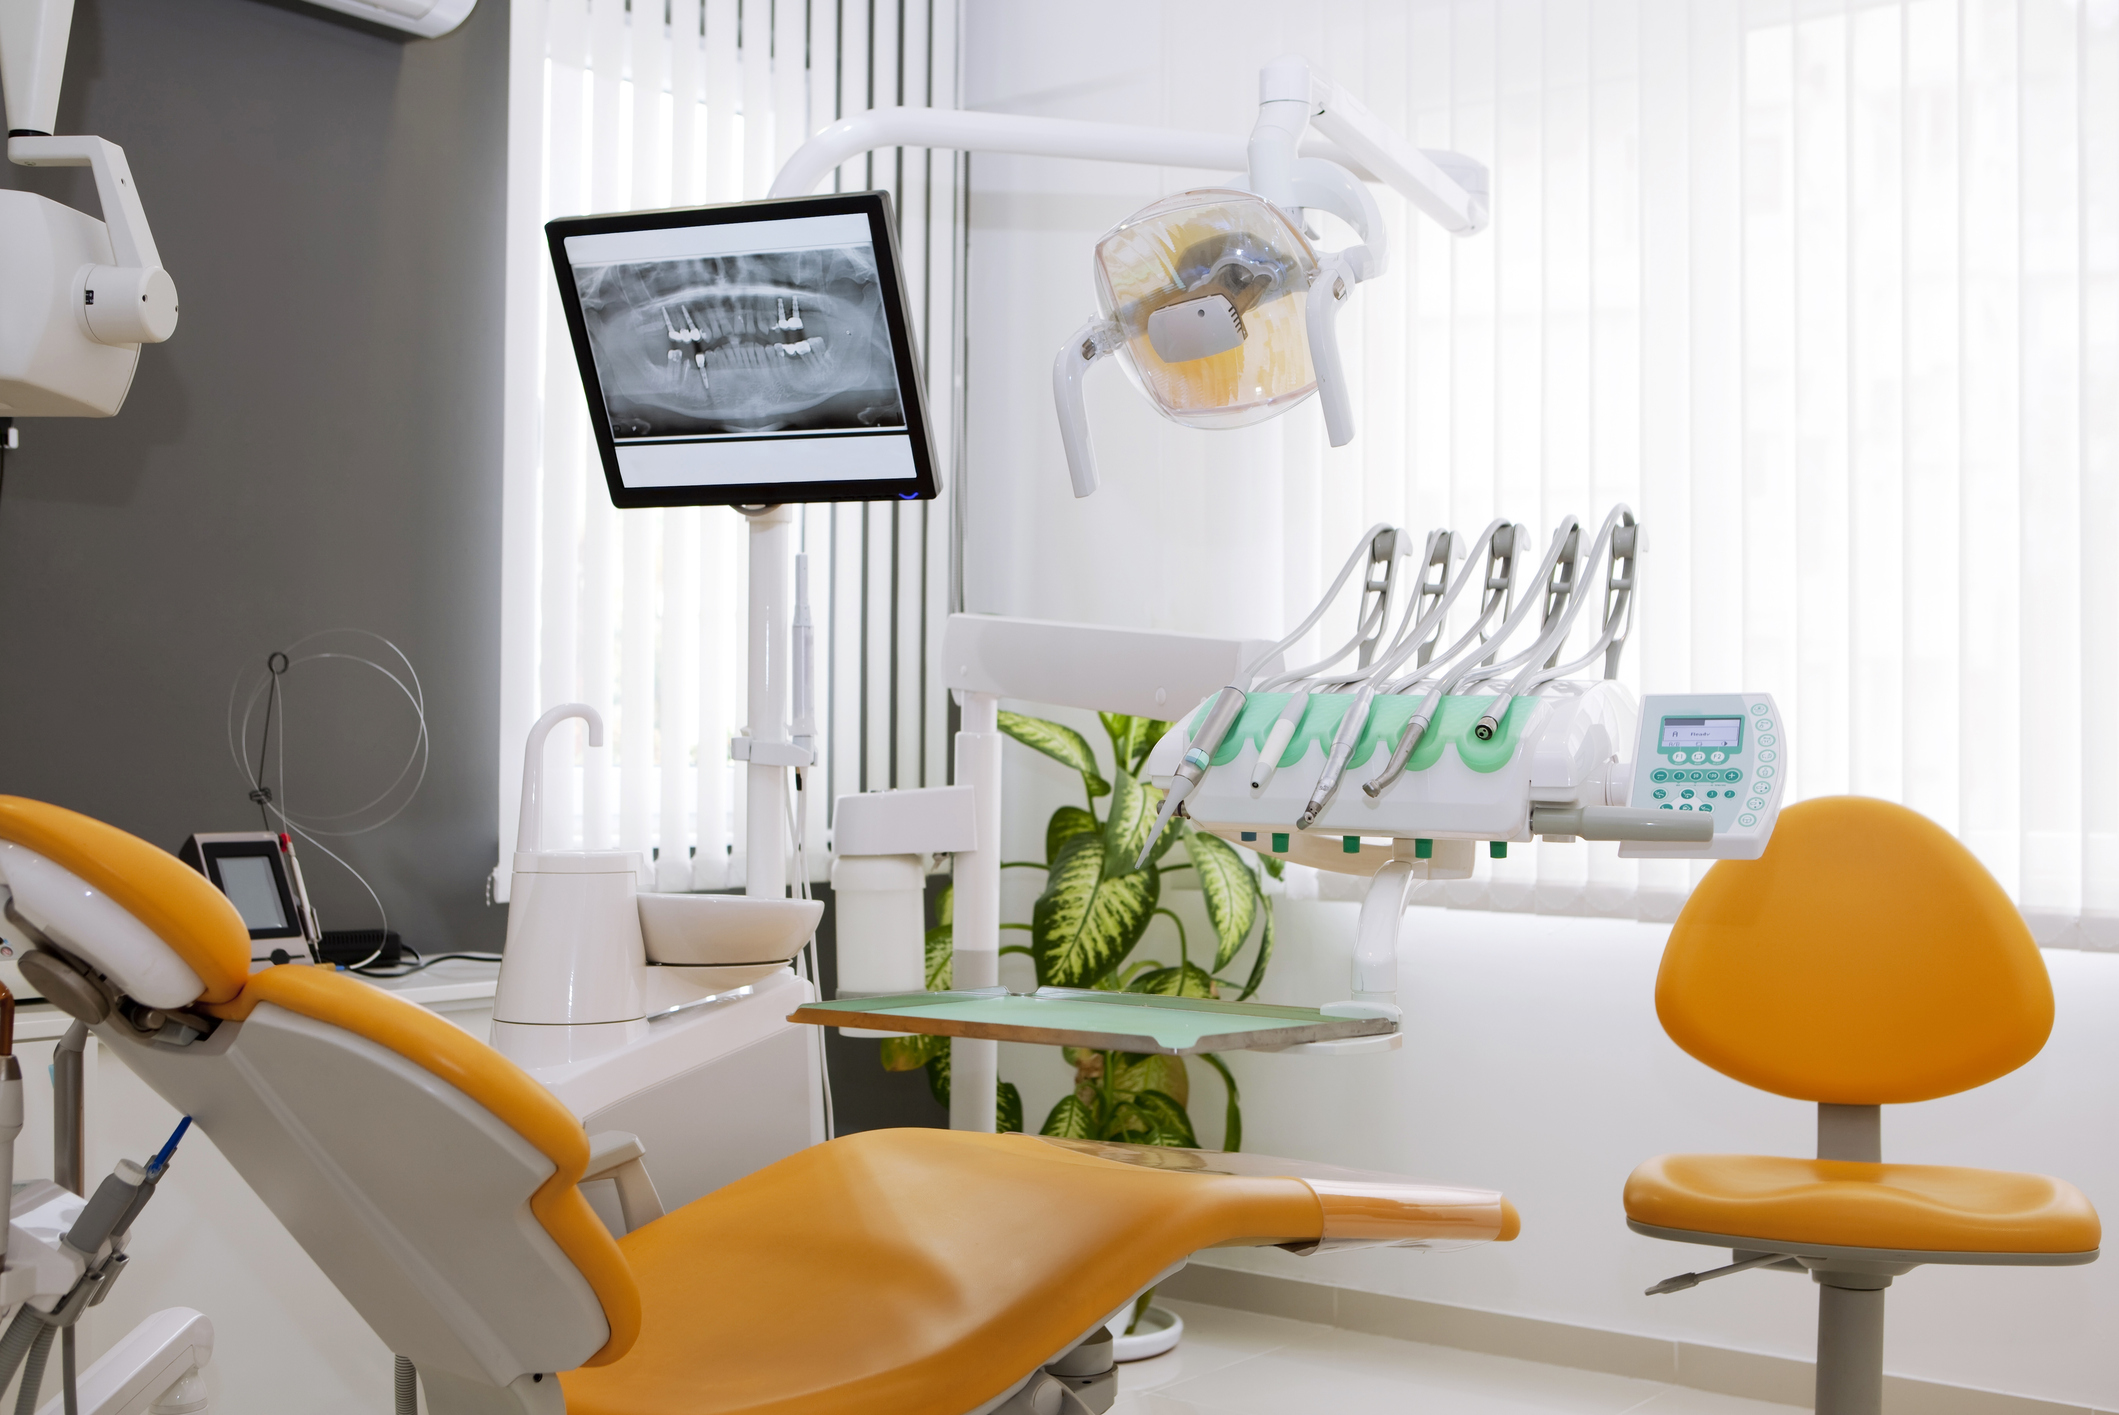 Image of the inside of a dentist office with equipment